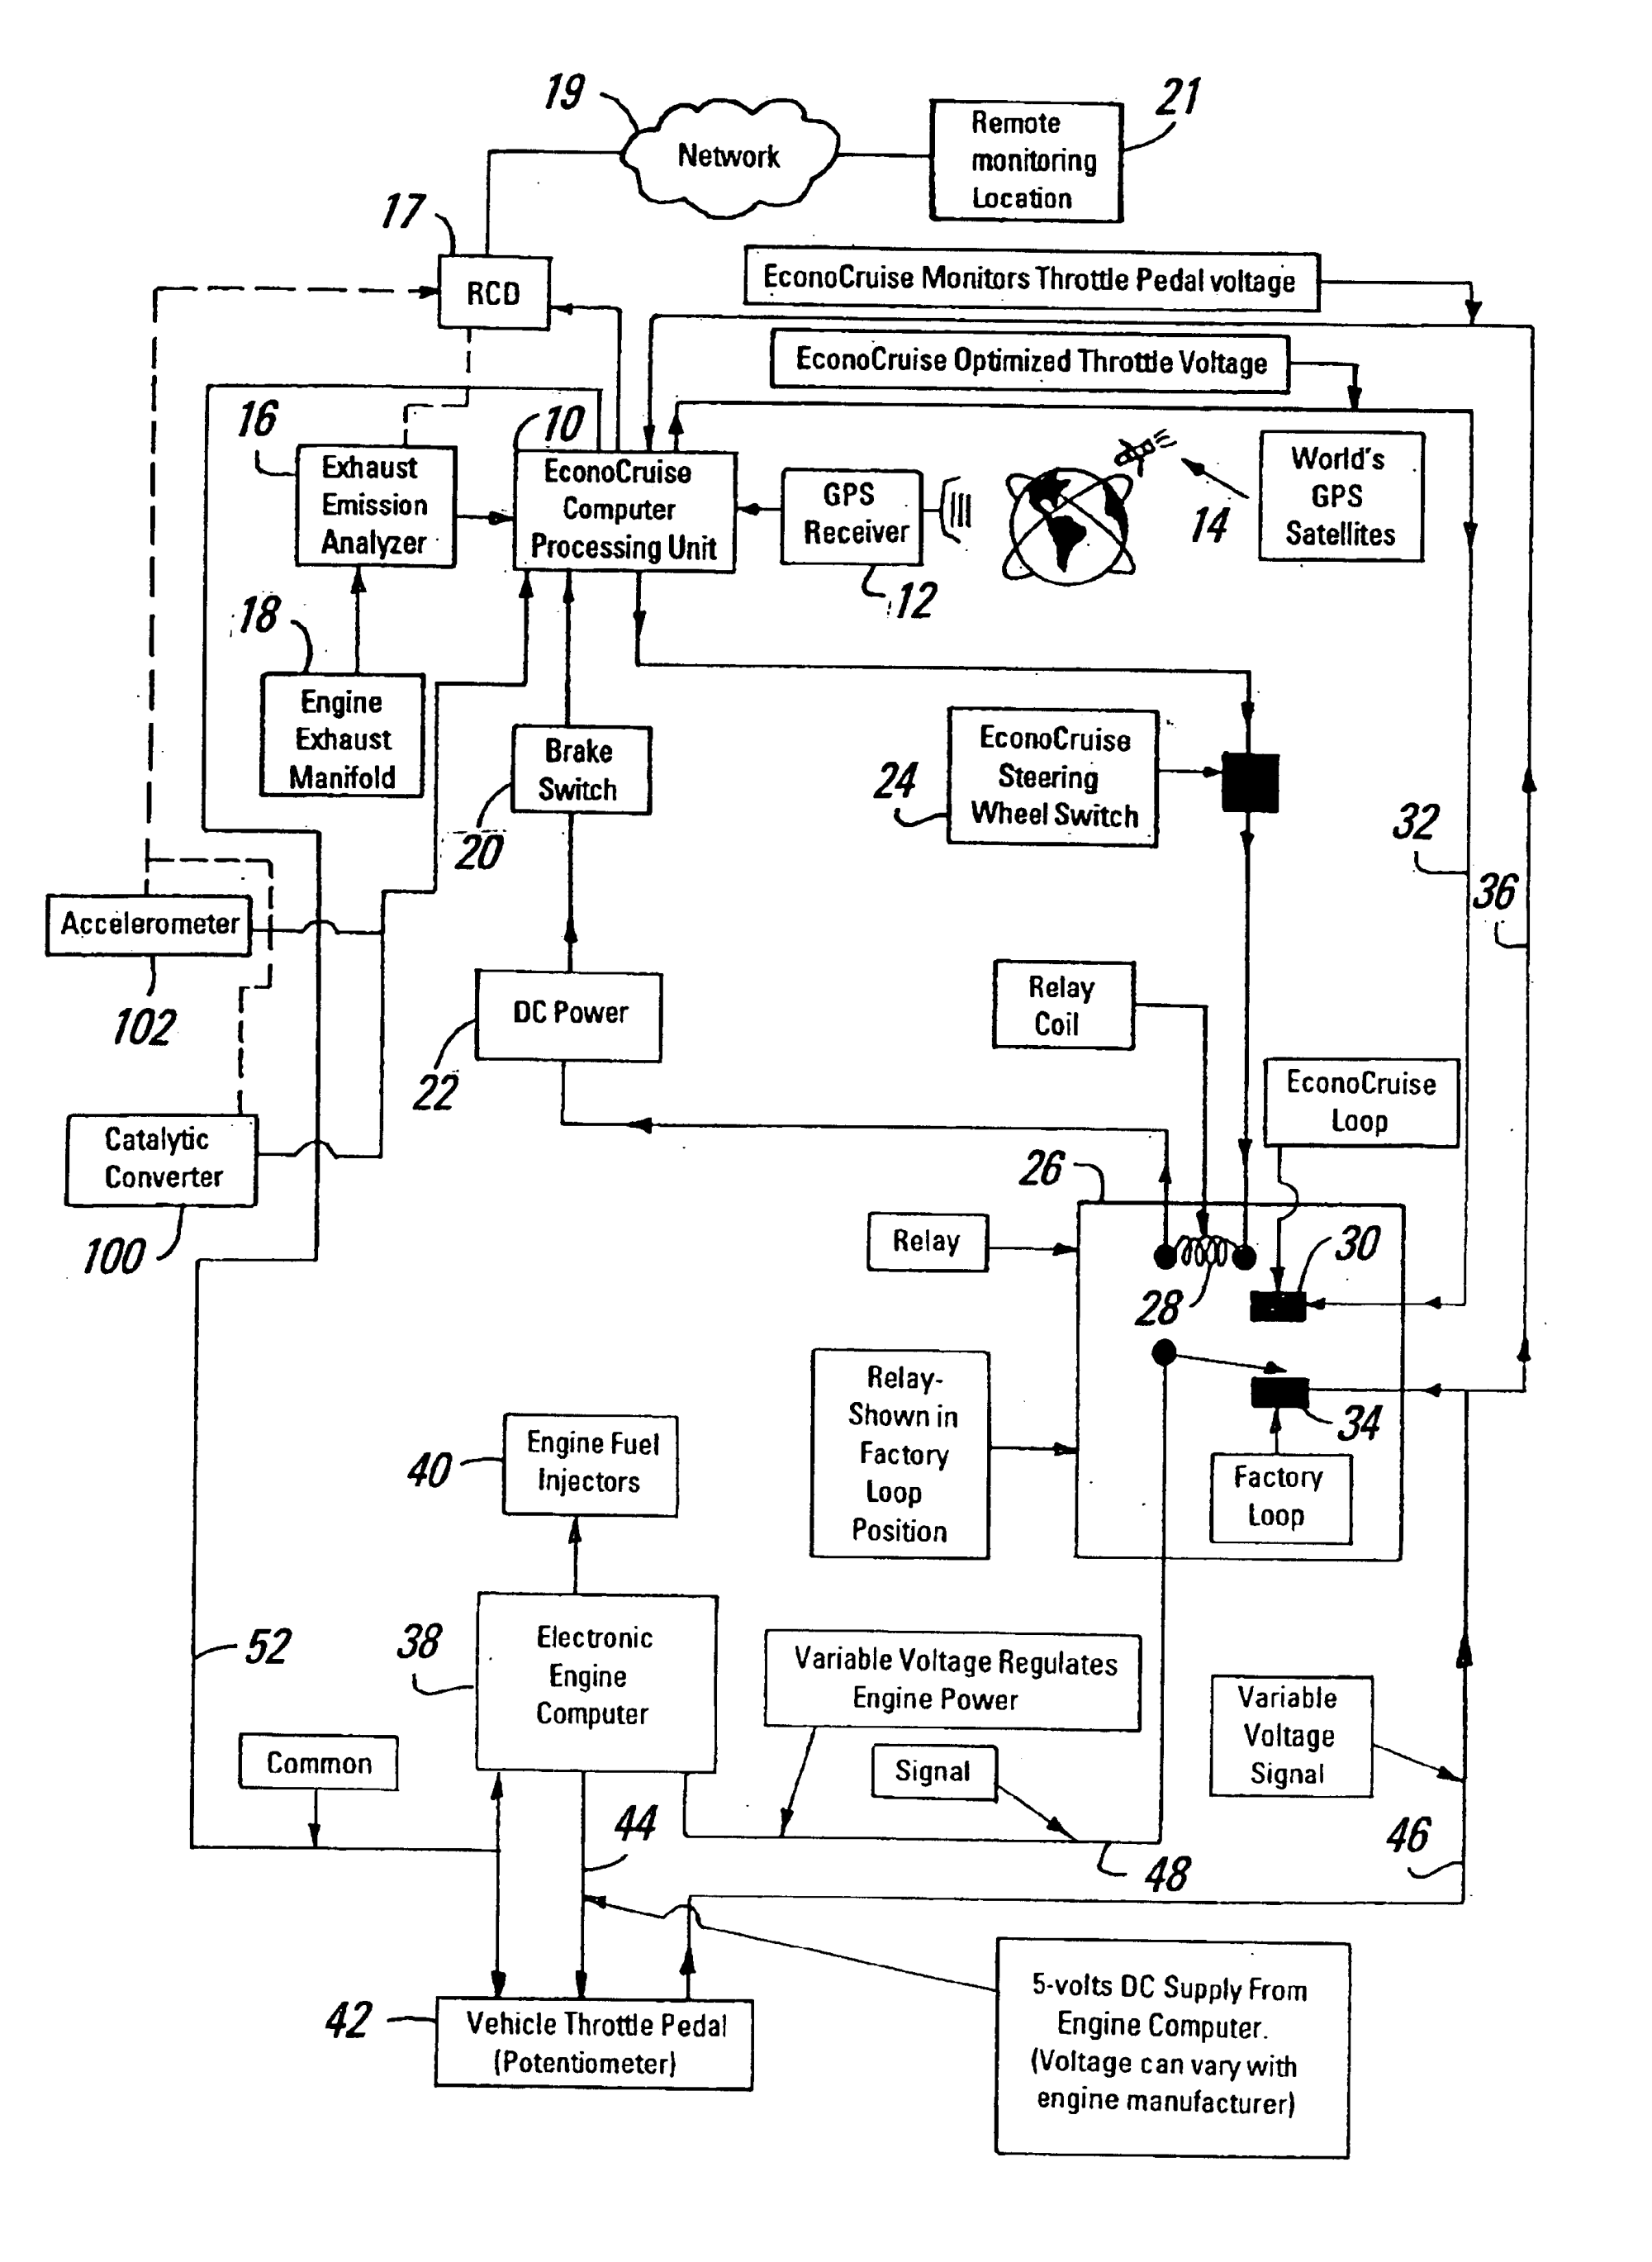 hight resolution of 2003 international 7600 wiring diagrams wiring diagrams scematic rh 44 jessicadonath de 1987 international s1900 wiring diagram 1986 international s1900